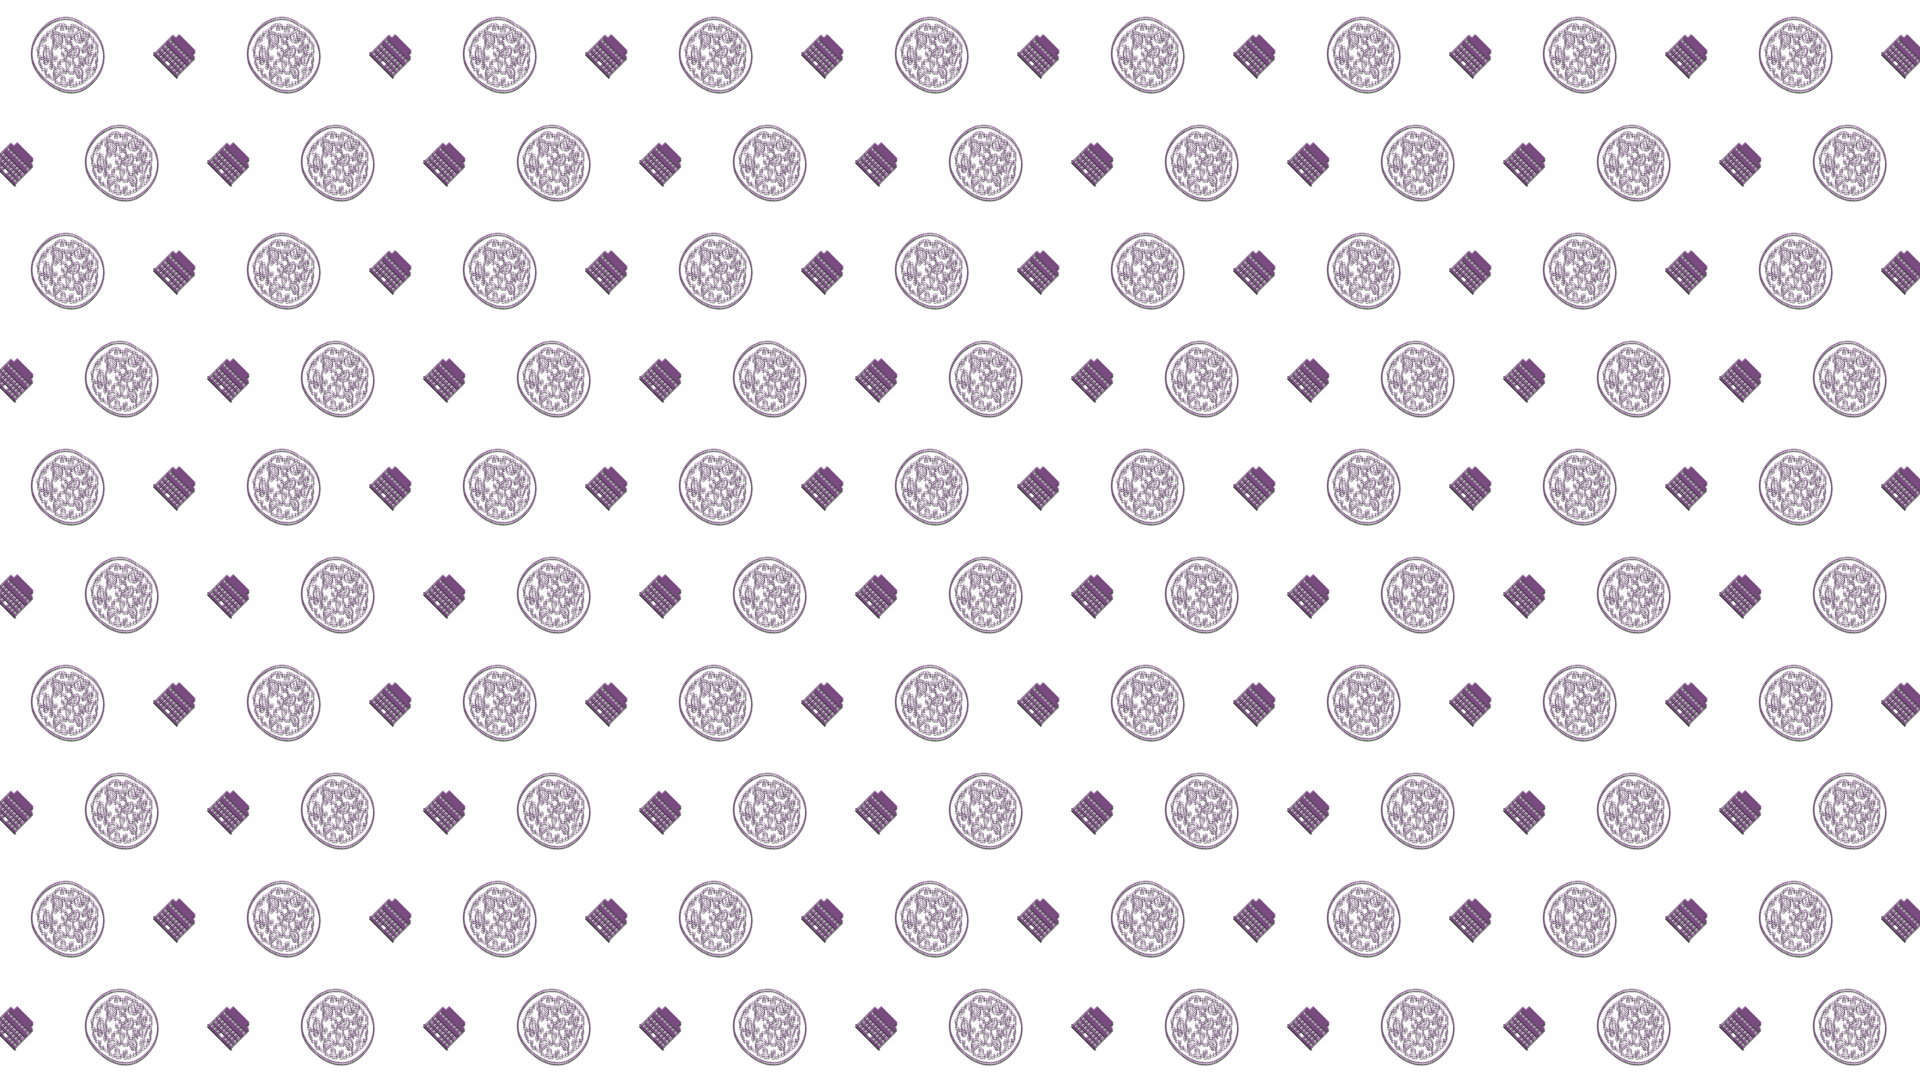 White, Purple, Pattern, Line, Design, Font, Product, Circle, Polka, Dot, Buildings, Construction, Mexico,  Free Image